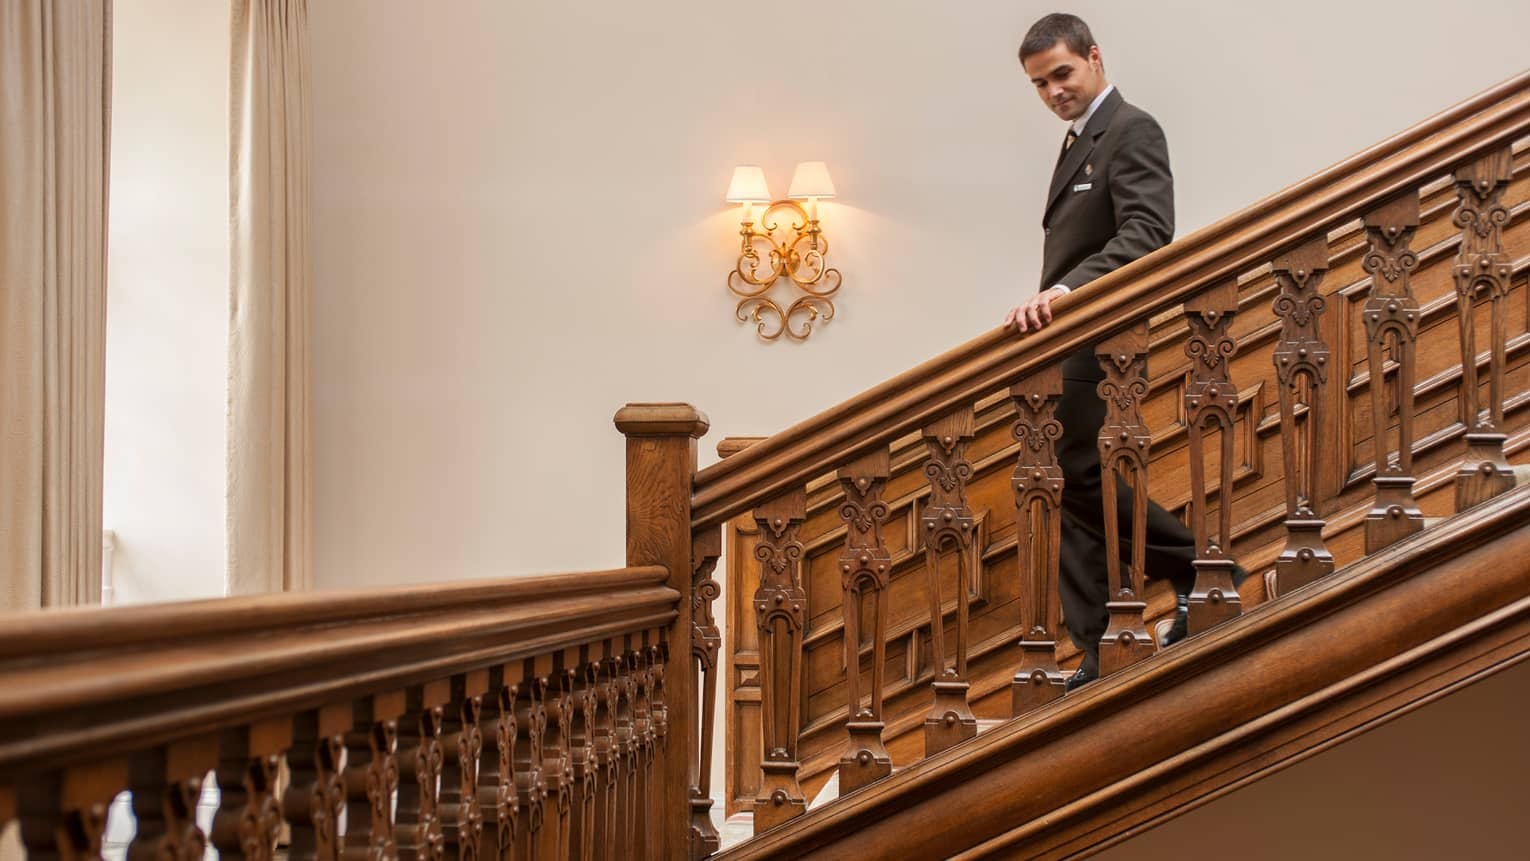 Hotel staff descends down carved  wood staircase past wall lamp